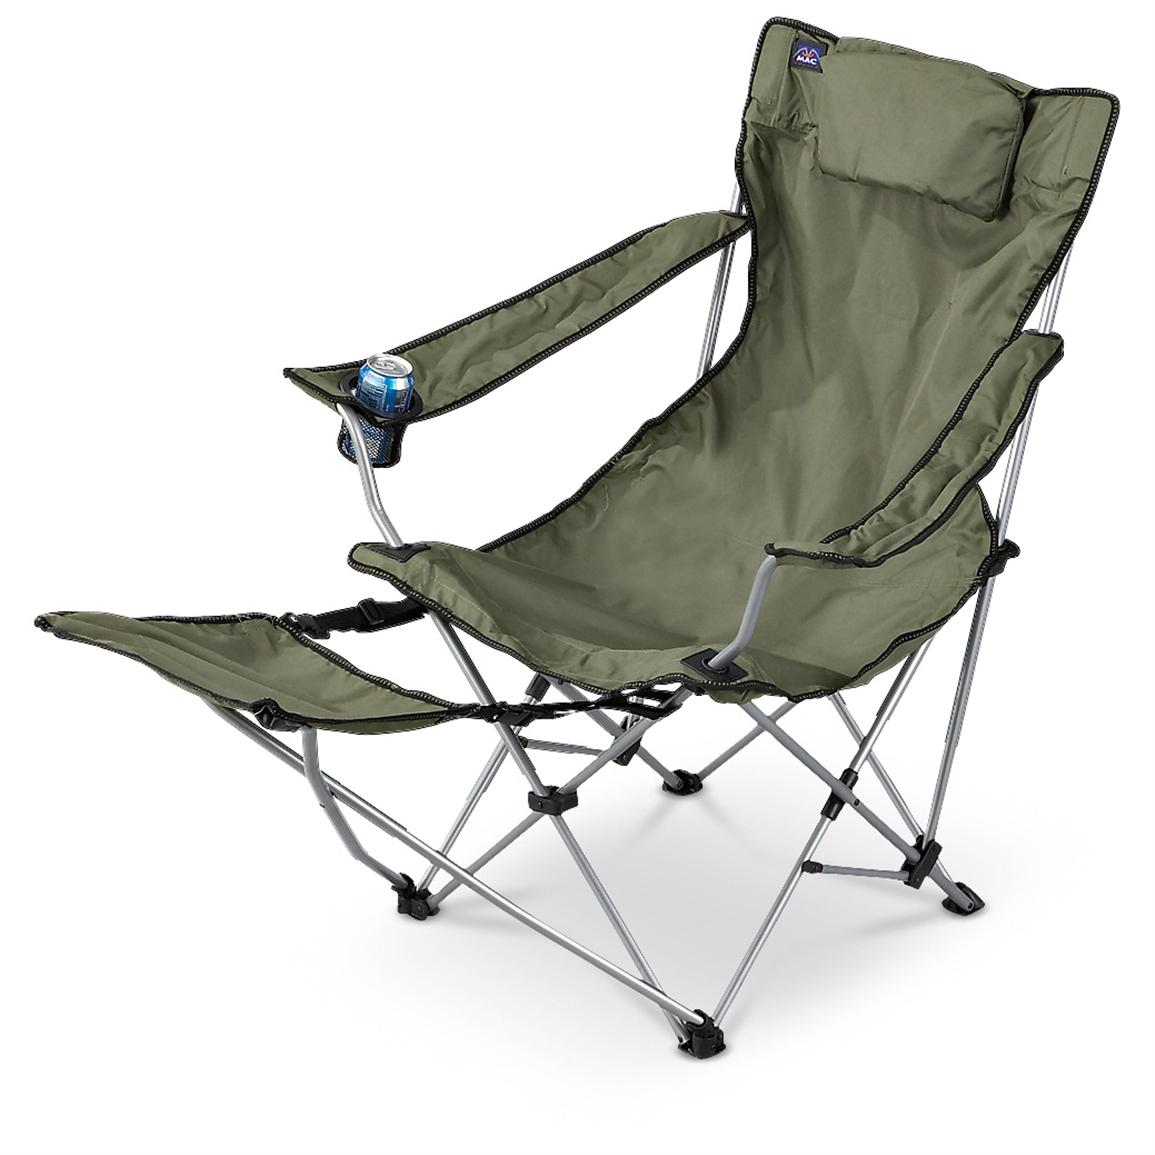 Camping Chair With Footrest Mac Sports Lounger Chair With Footrest 156343 Chairs